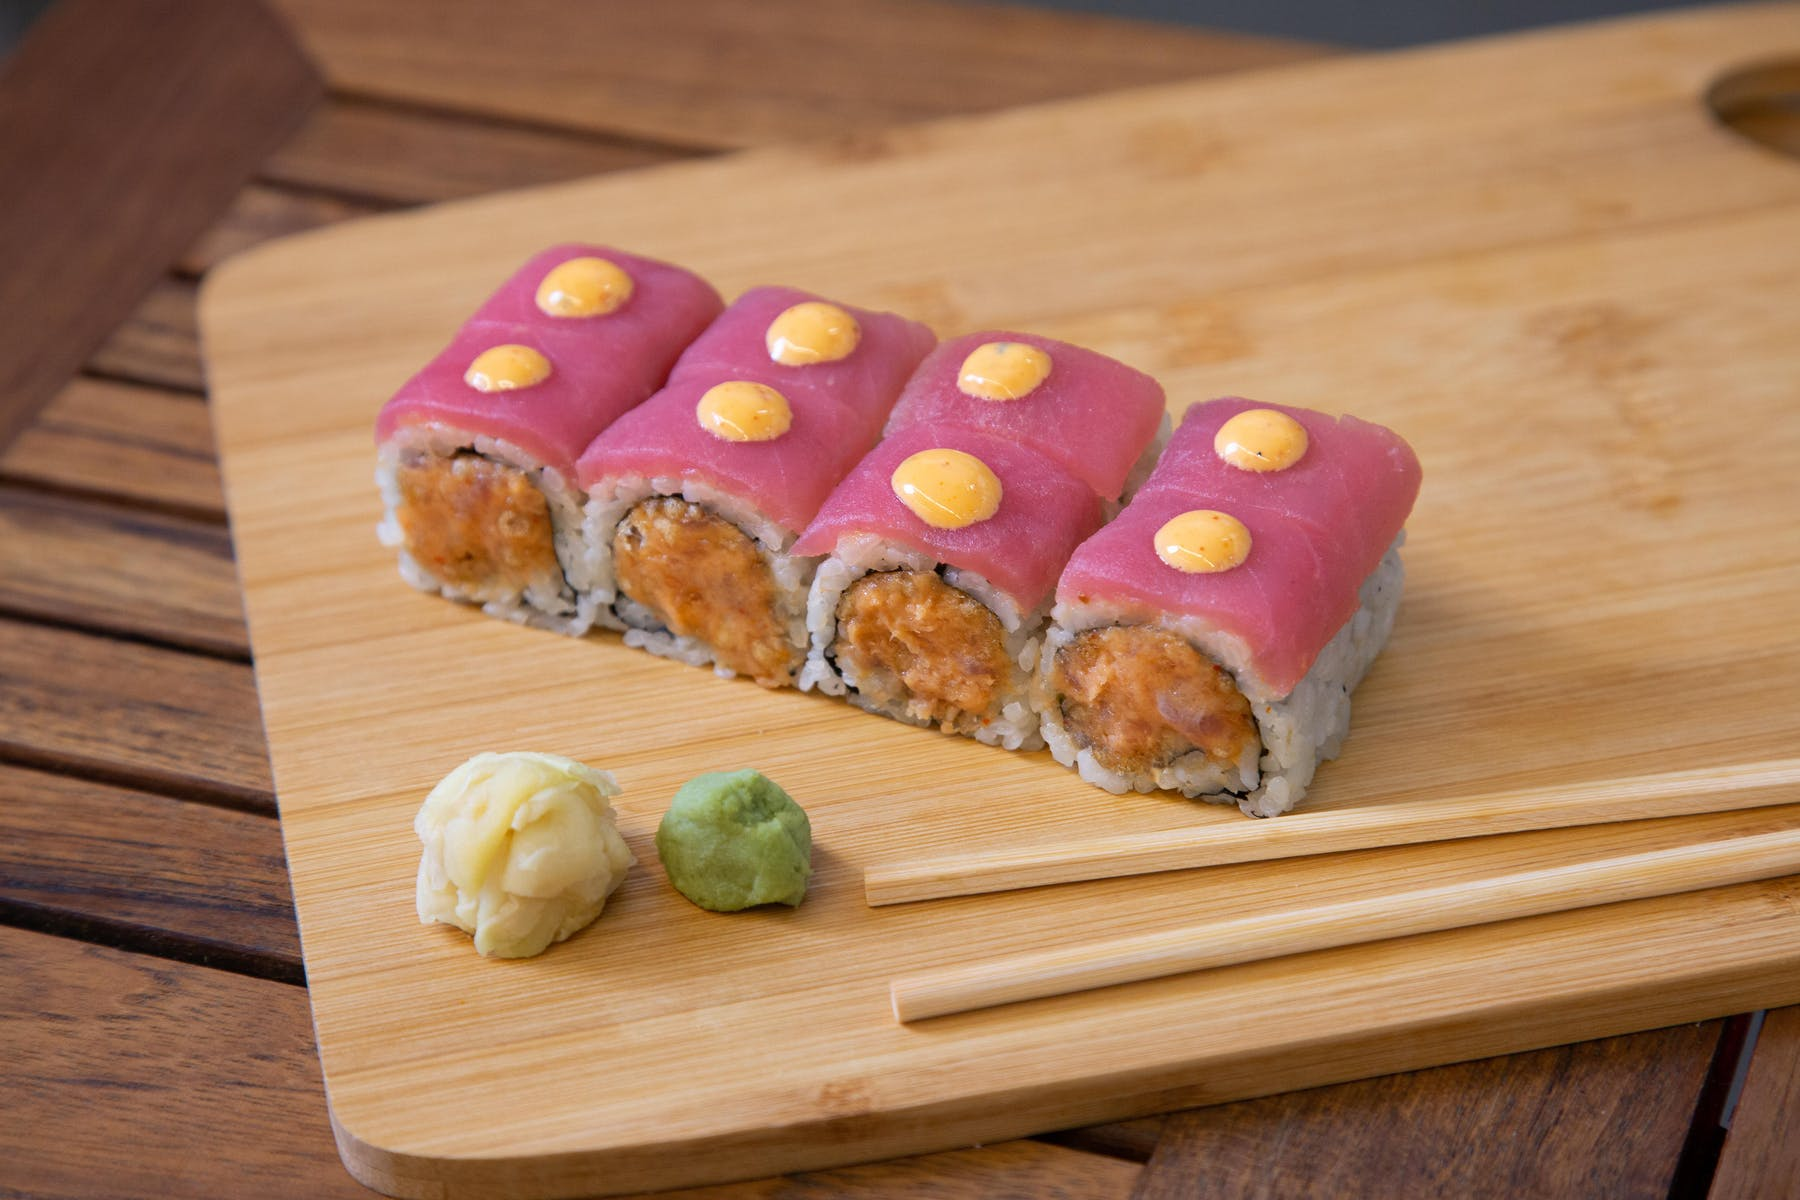 sushi on a wooden cutting board